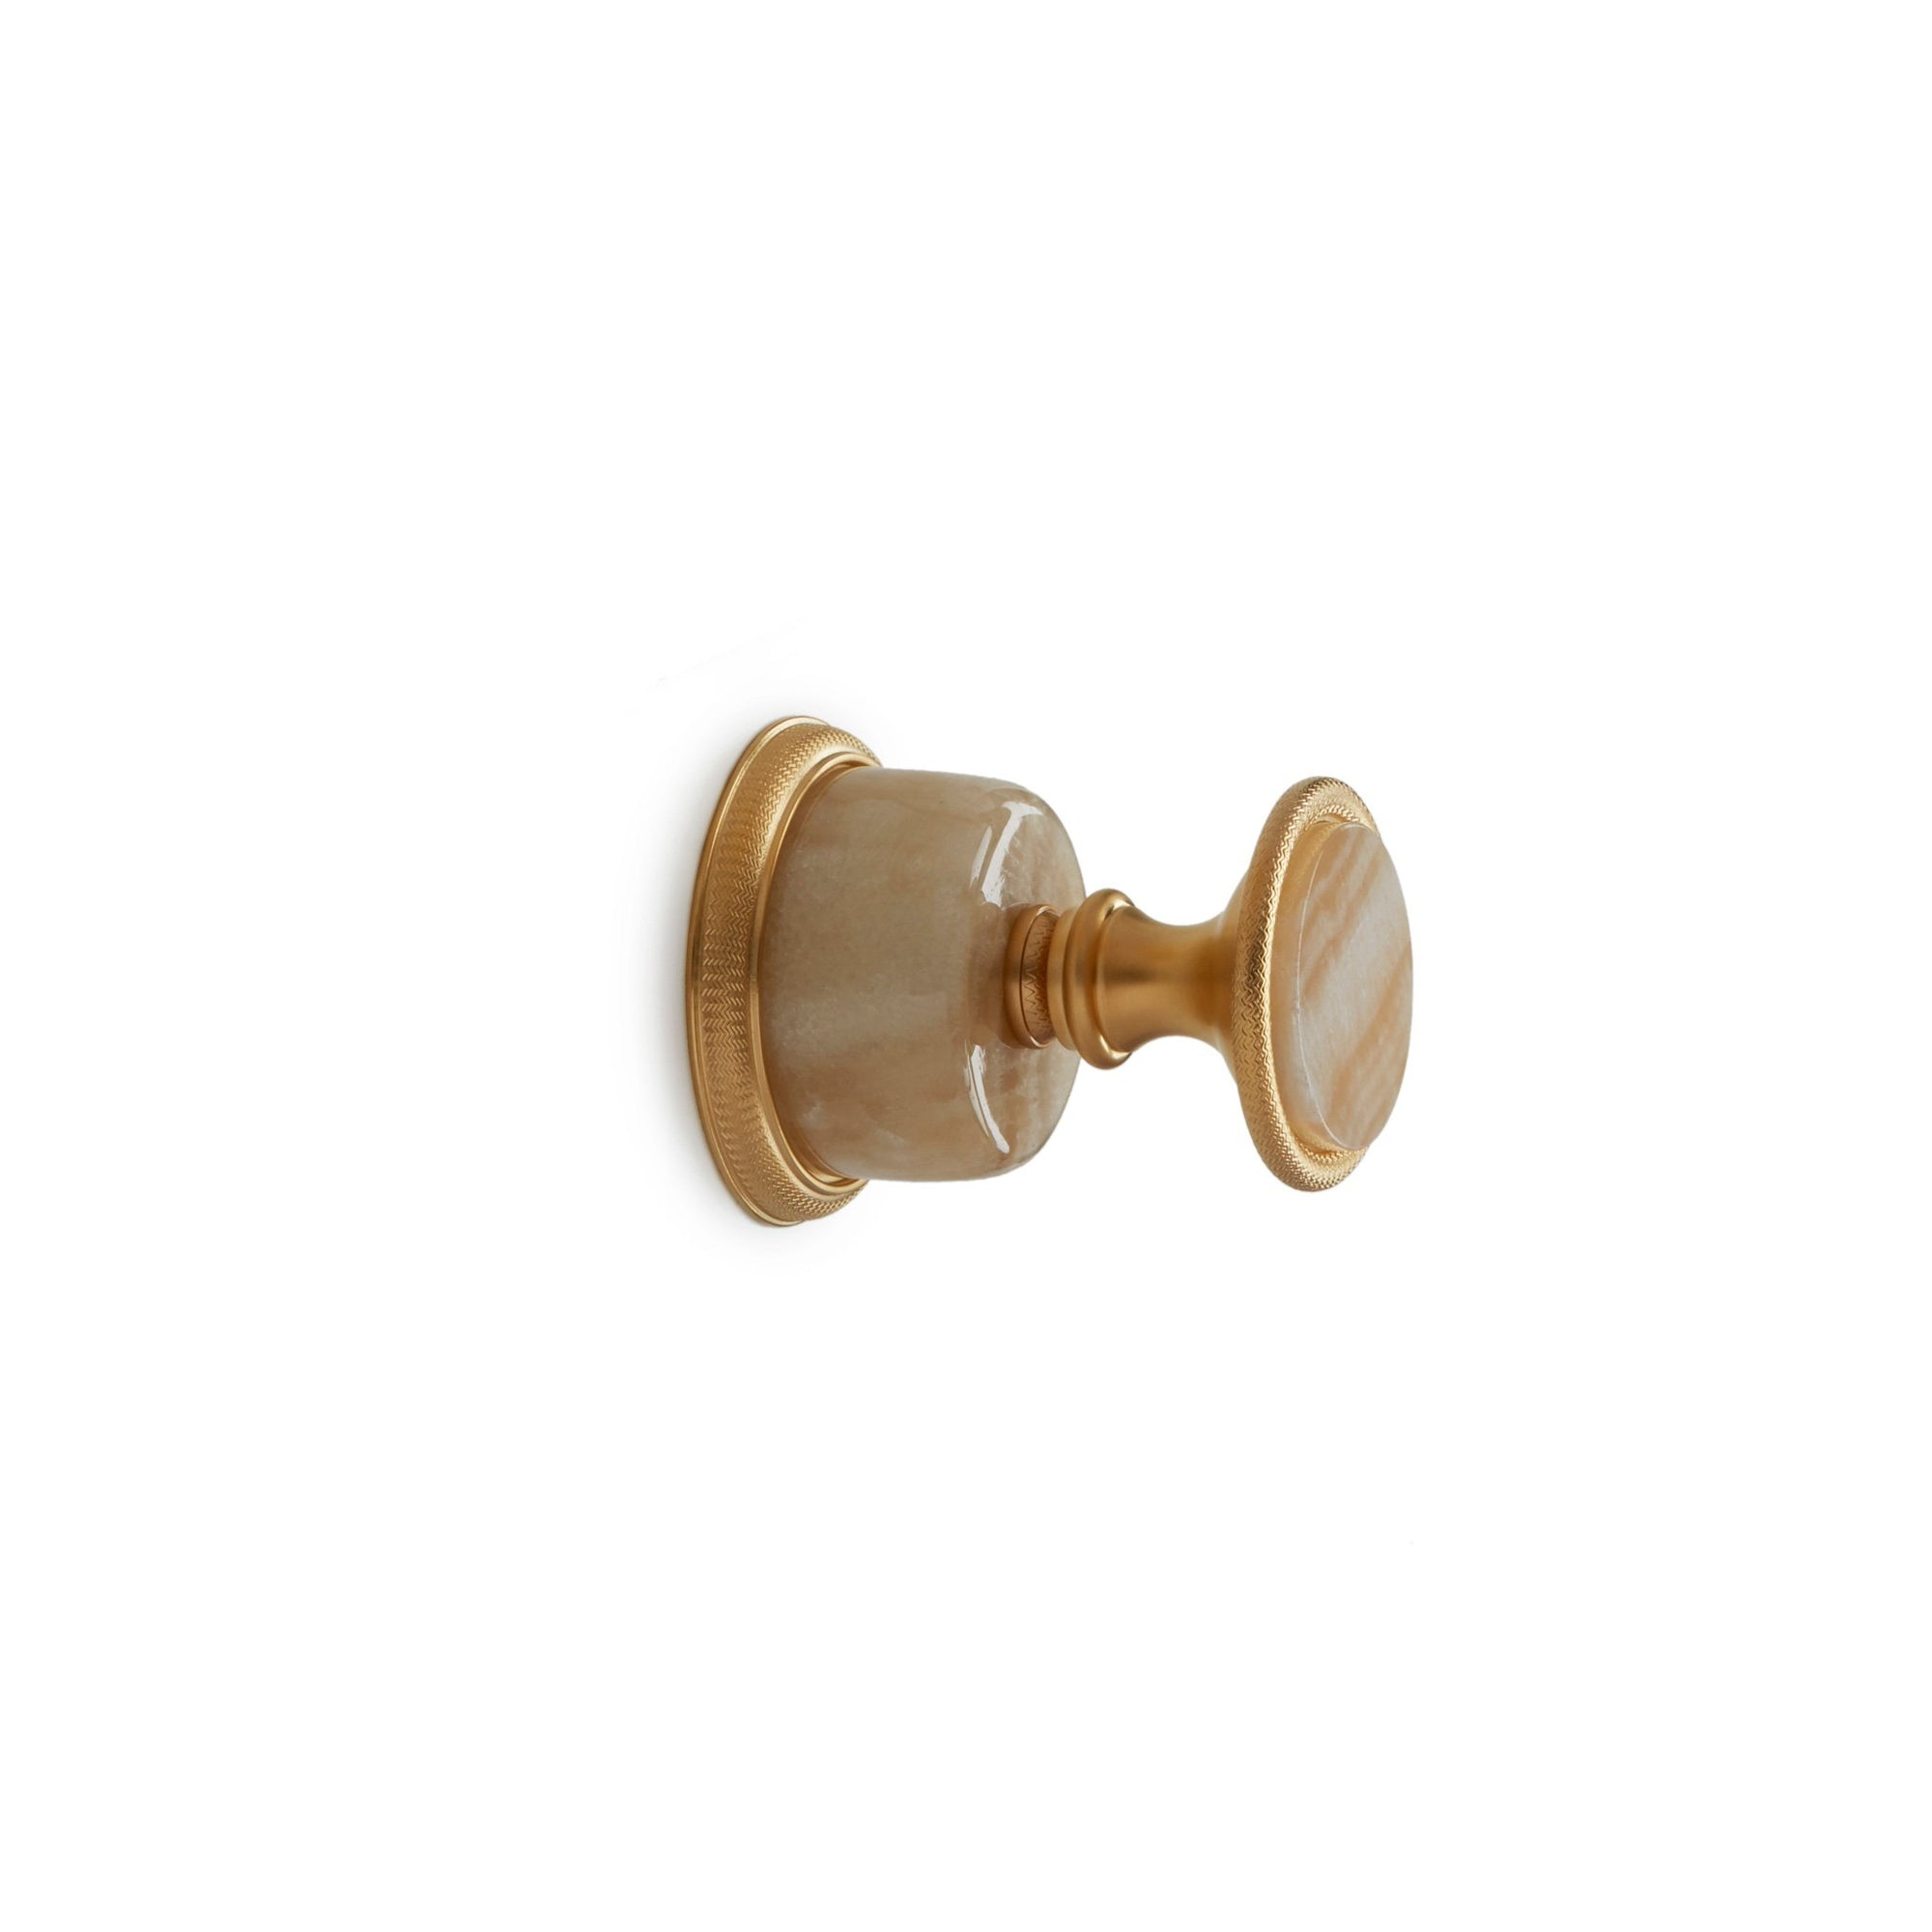 1065KB-ESC-HNOX-GP Sherle Wagner International Honey Onyx Insert Knurled Knob Volume Control and Diverter Trim in Gold Plate metal finish